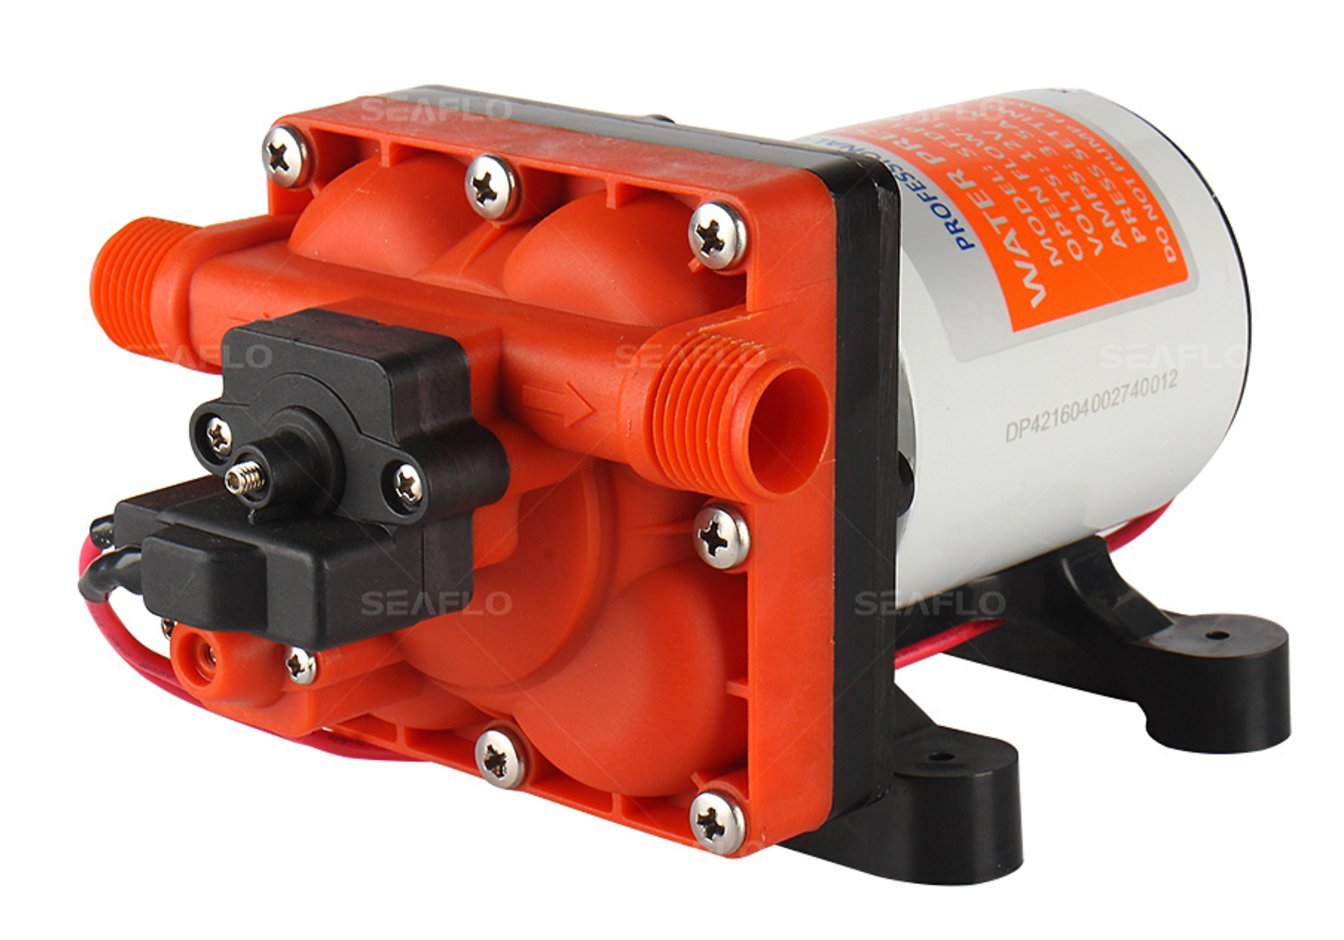 SEAFLO 42-Series Water Pressure Diaphragm Pump w/Variable Flow for Reduced Cycling - 12V, 3.0GPM, 55PSI